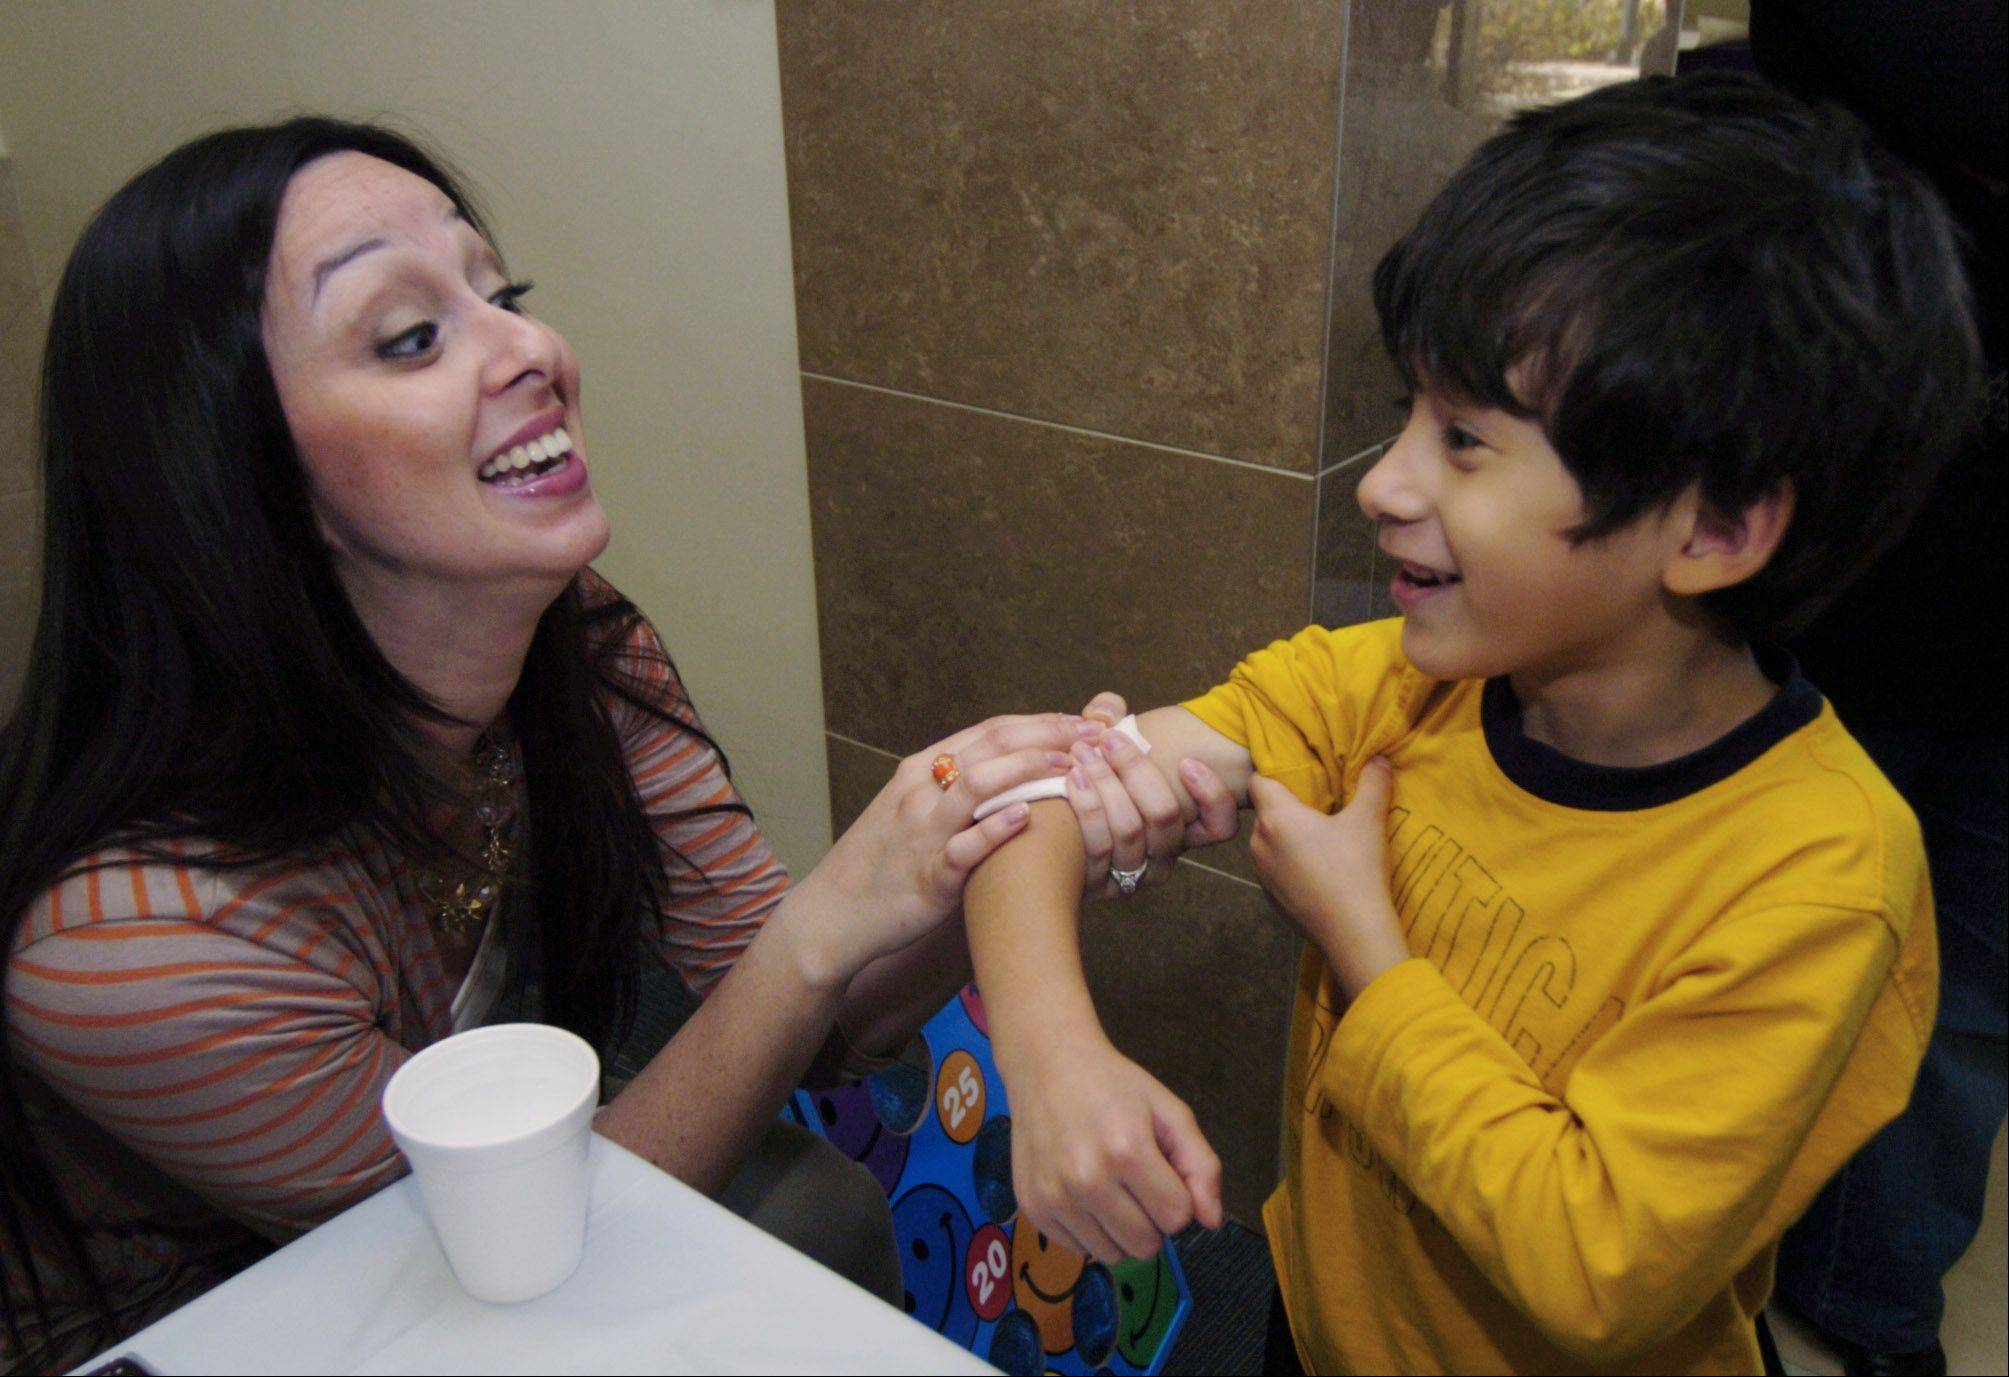 Patty Anderson, a counselor with Health and Human Services, counts to 20 with Ricardo Hernandez, 5, of Hoffman Estates as Anderson applies a temporary tattoo Ricardo won at the 2011 fiesta.